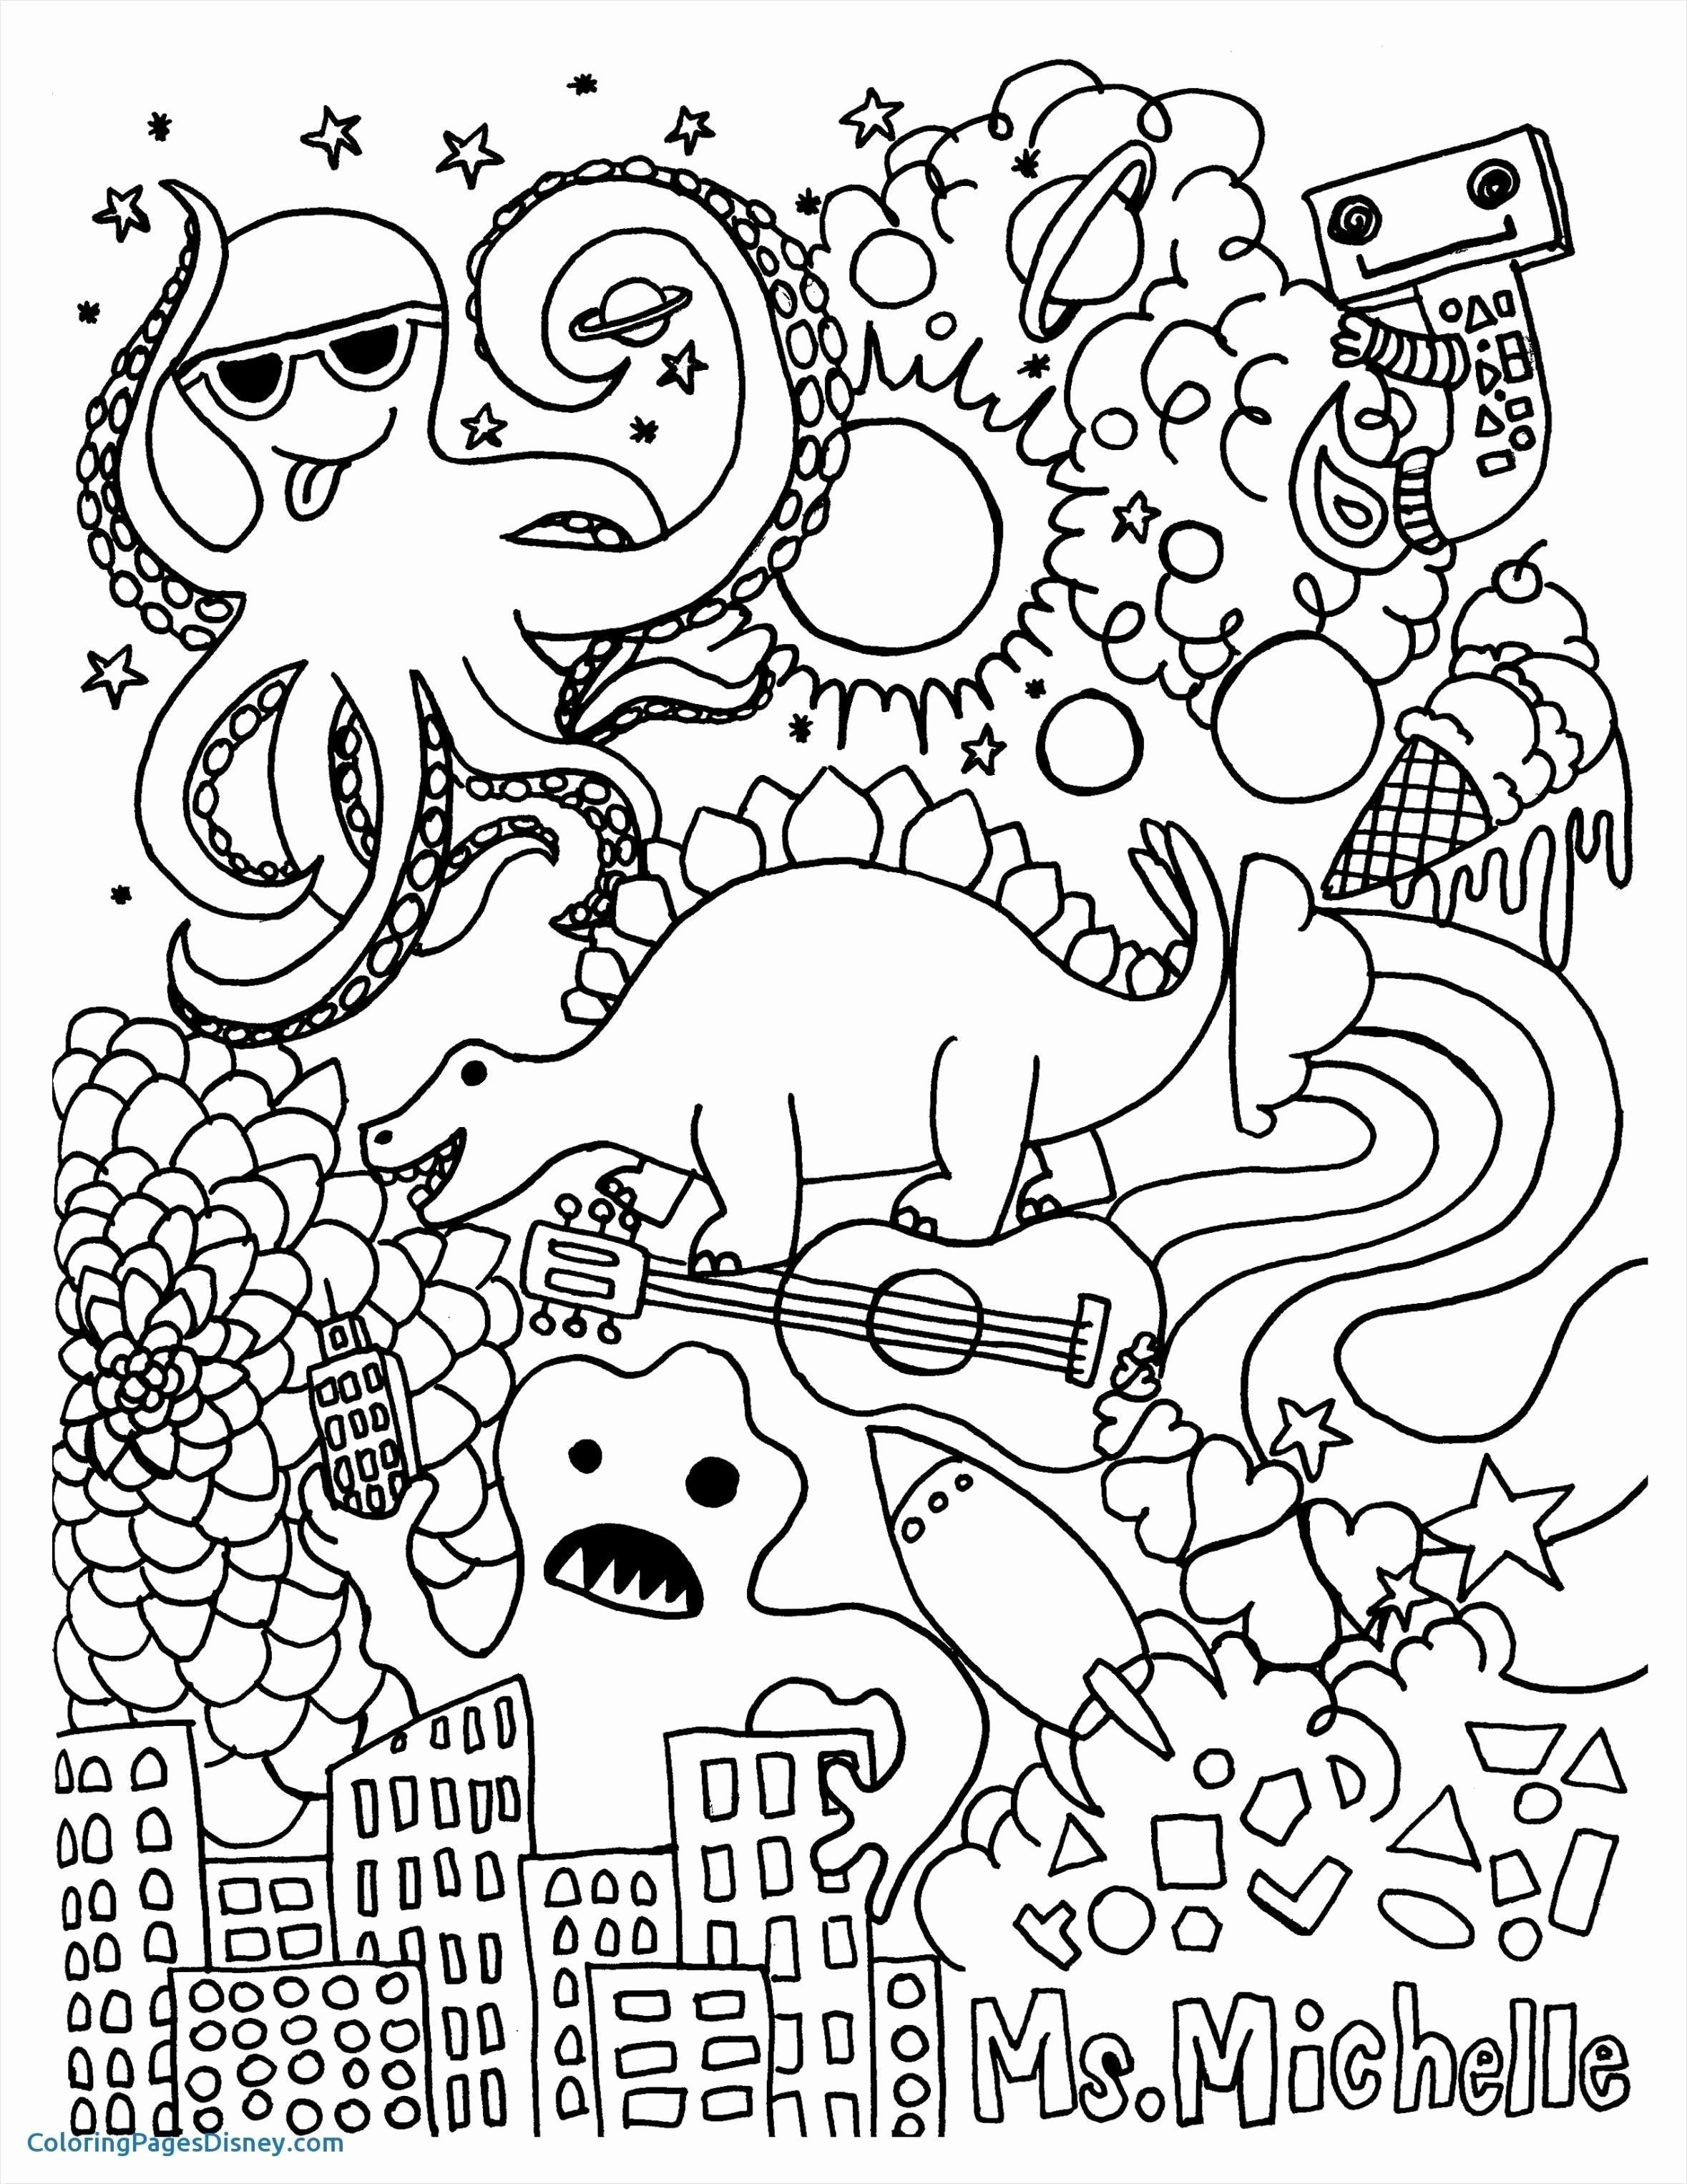 Coloring Pages For Adults Funny Awesome Coloring Pages Disney Coloring Books In Bulk Mindful Coloring Pages Inspirational Mandala Coloring Pages Coloring Books